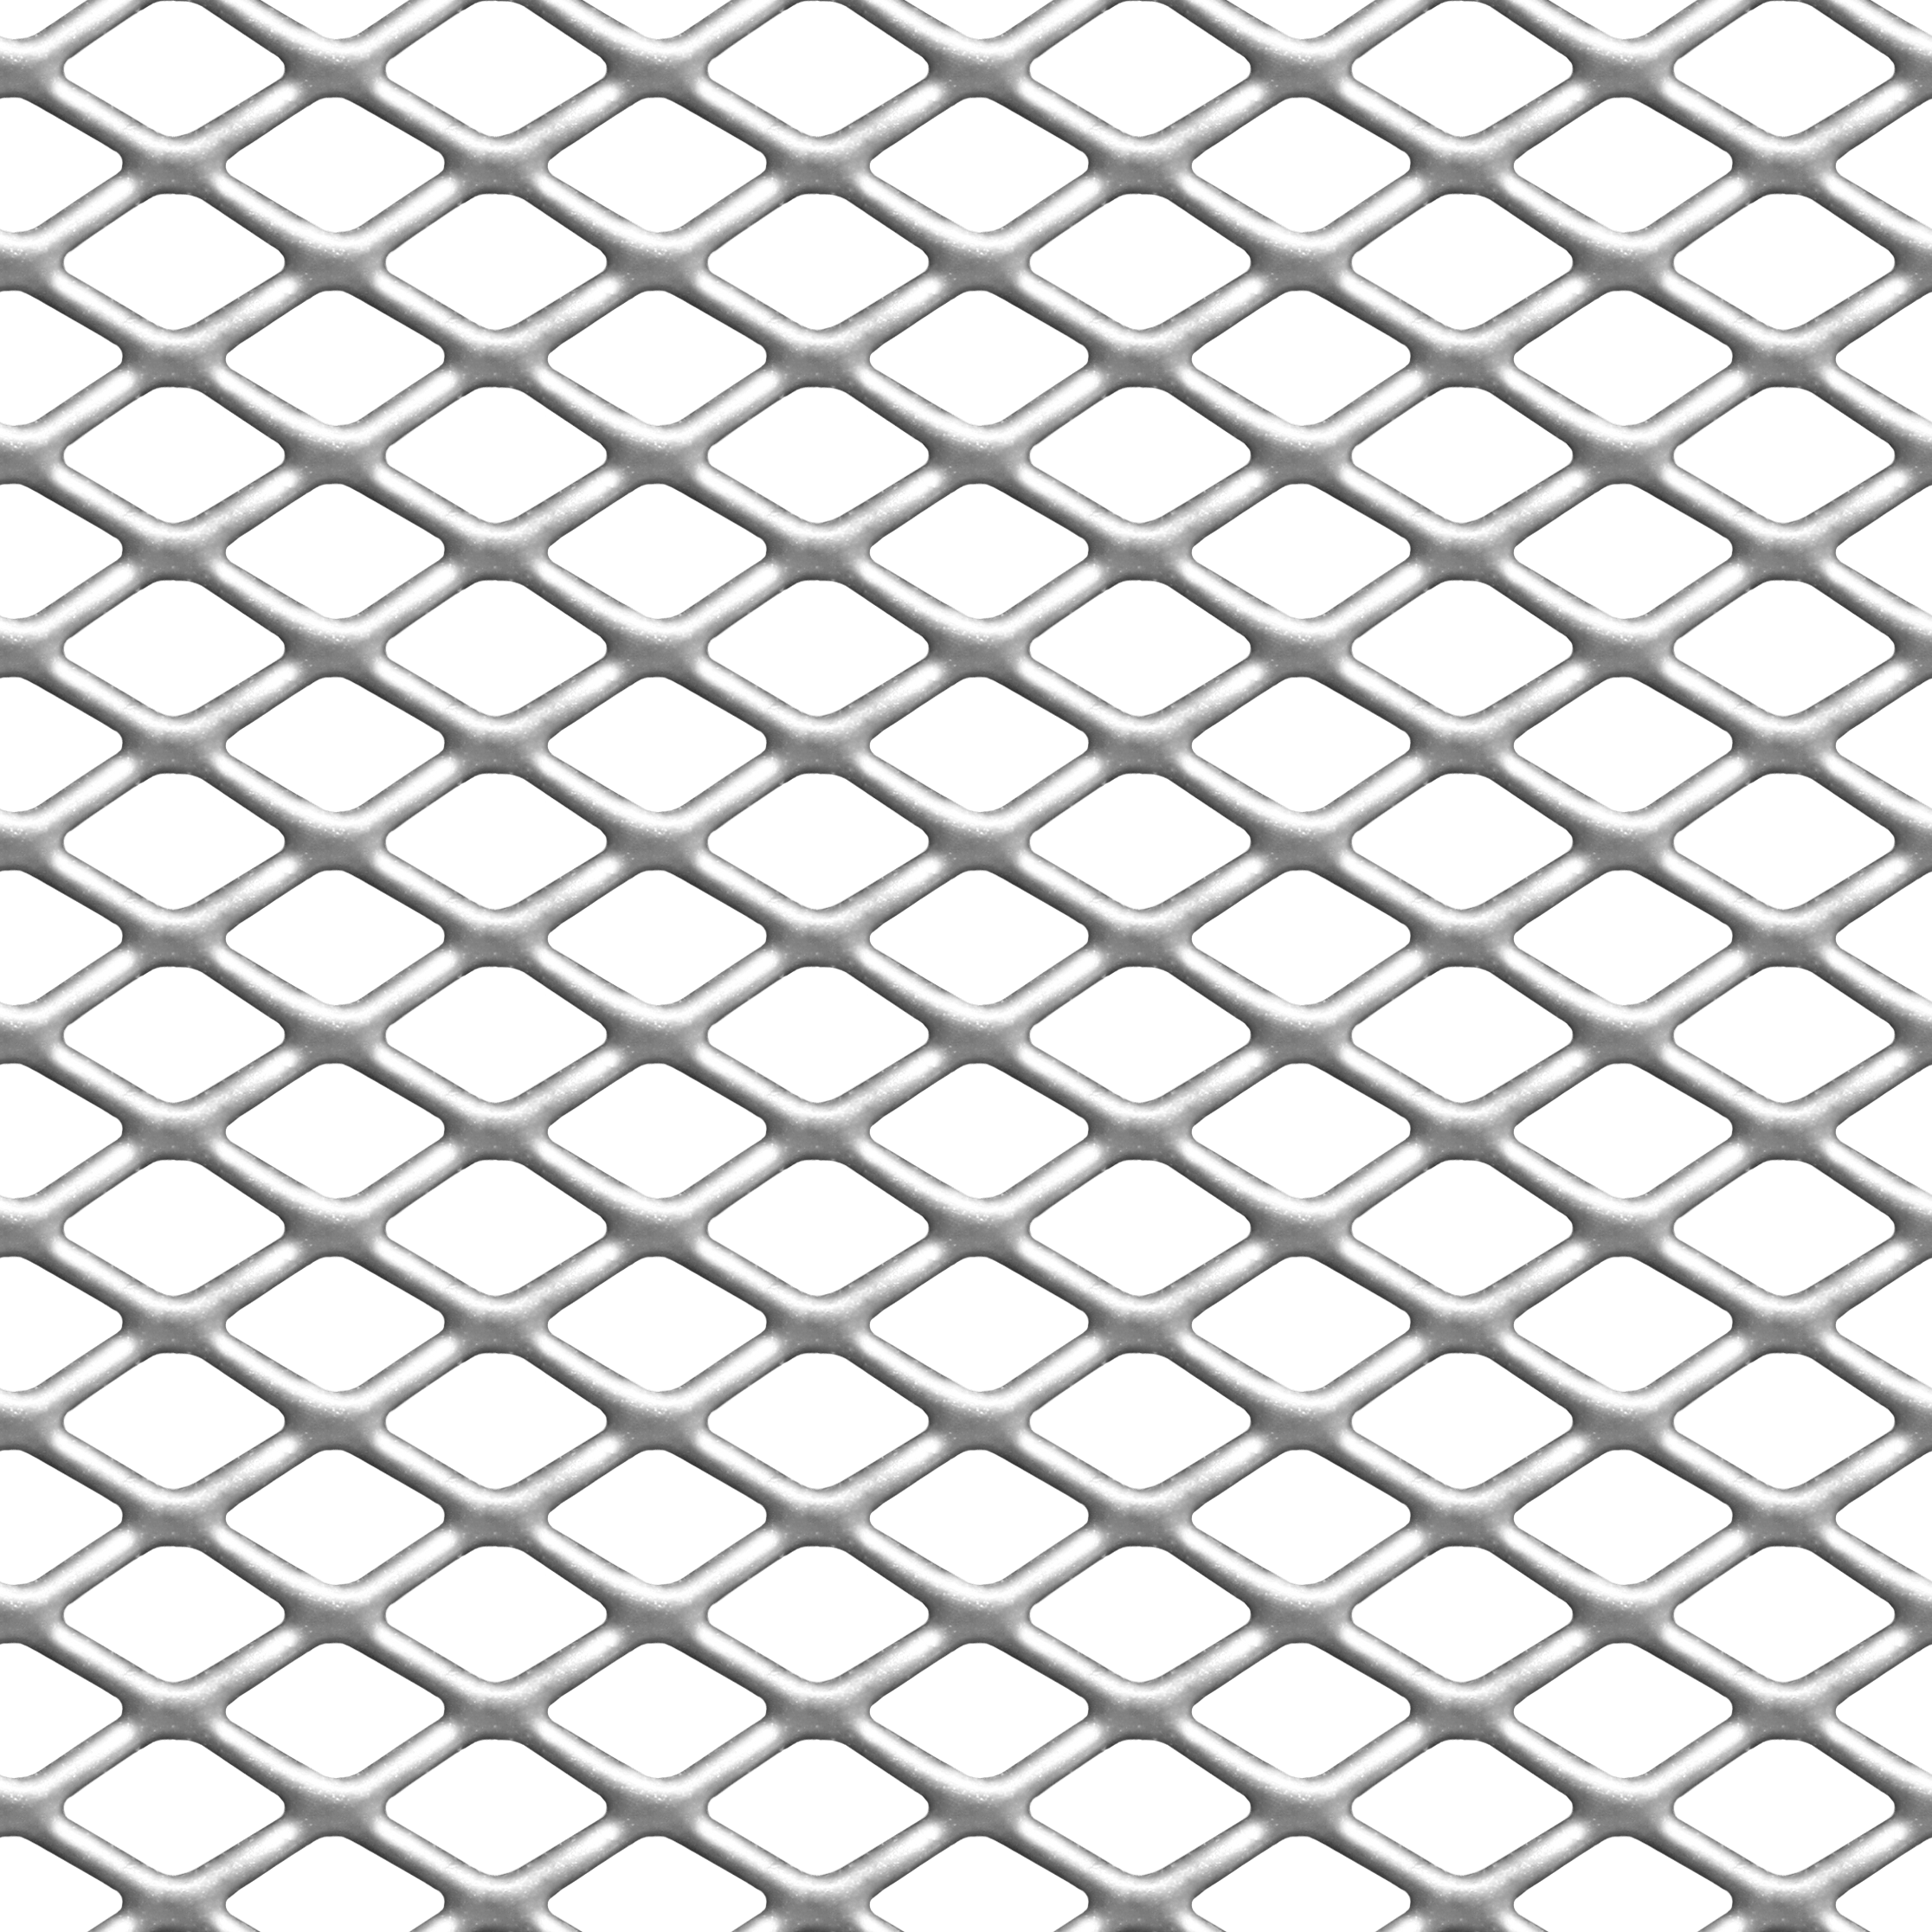 transparent chain link fence texture. Share This: Transparent Chain Link Fence Texture